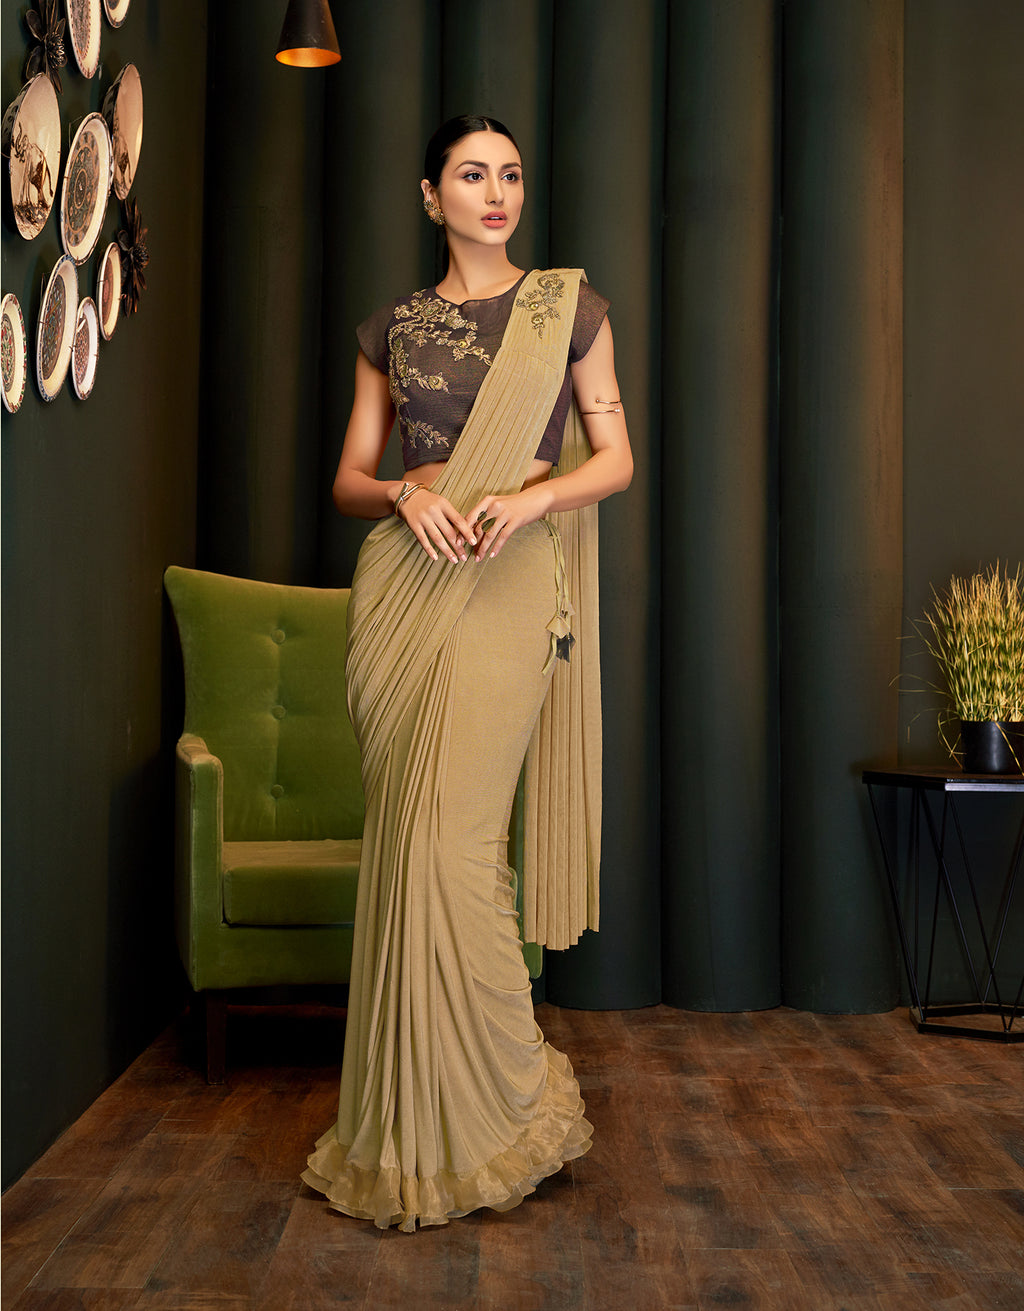 Beige Lycra Latest Saree Fashion @Indiandresses.co